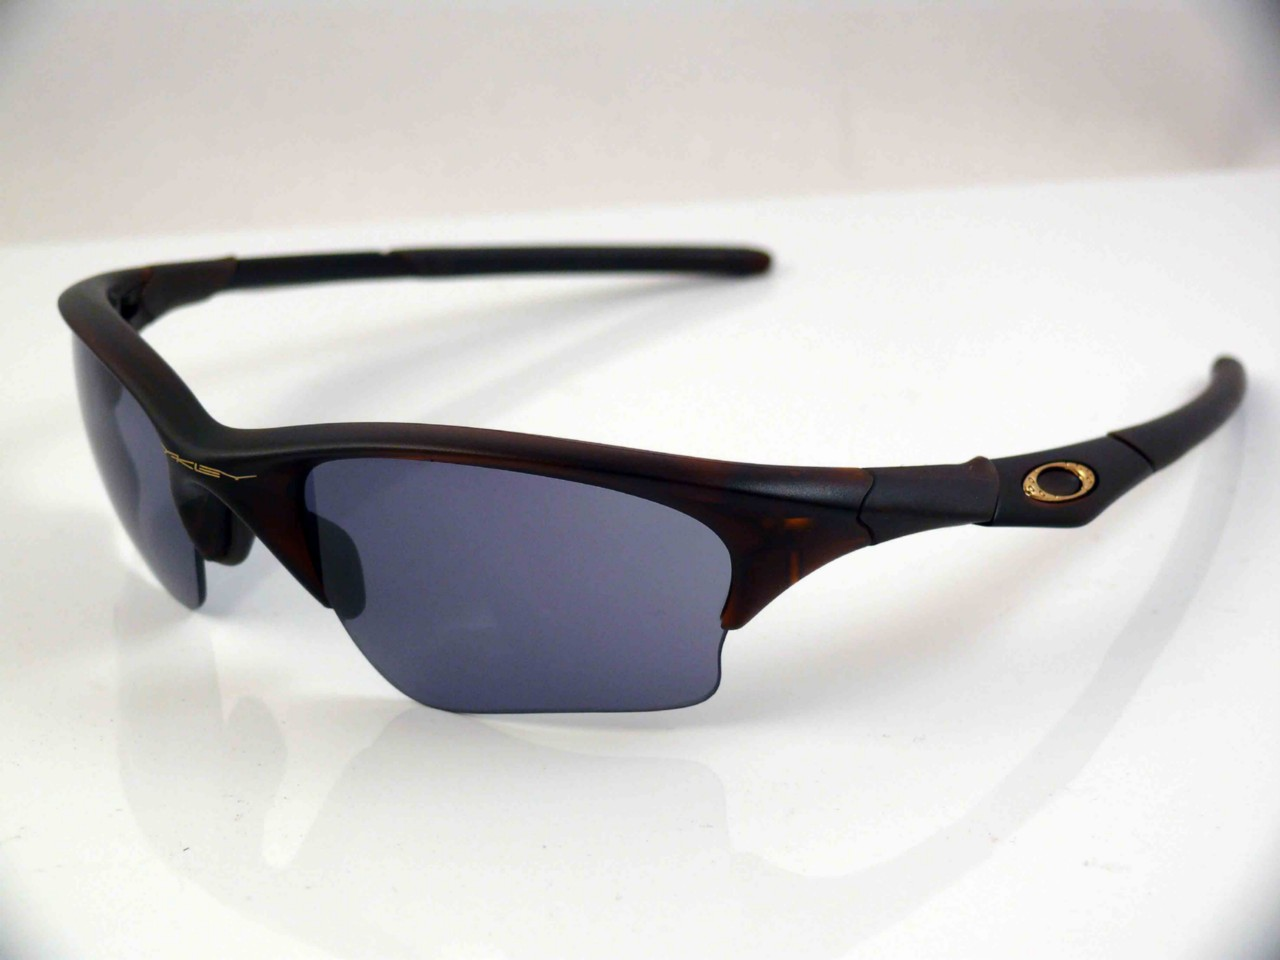 Oakley Half Jacket 2 0 Xl >> Half Jacket Vs Flak Jacket Sunglasses | David Simchi-Levi